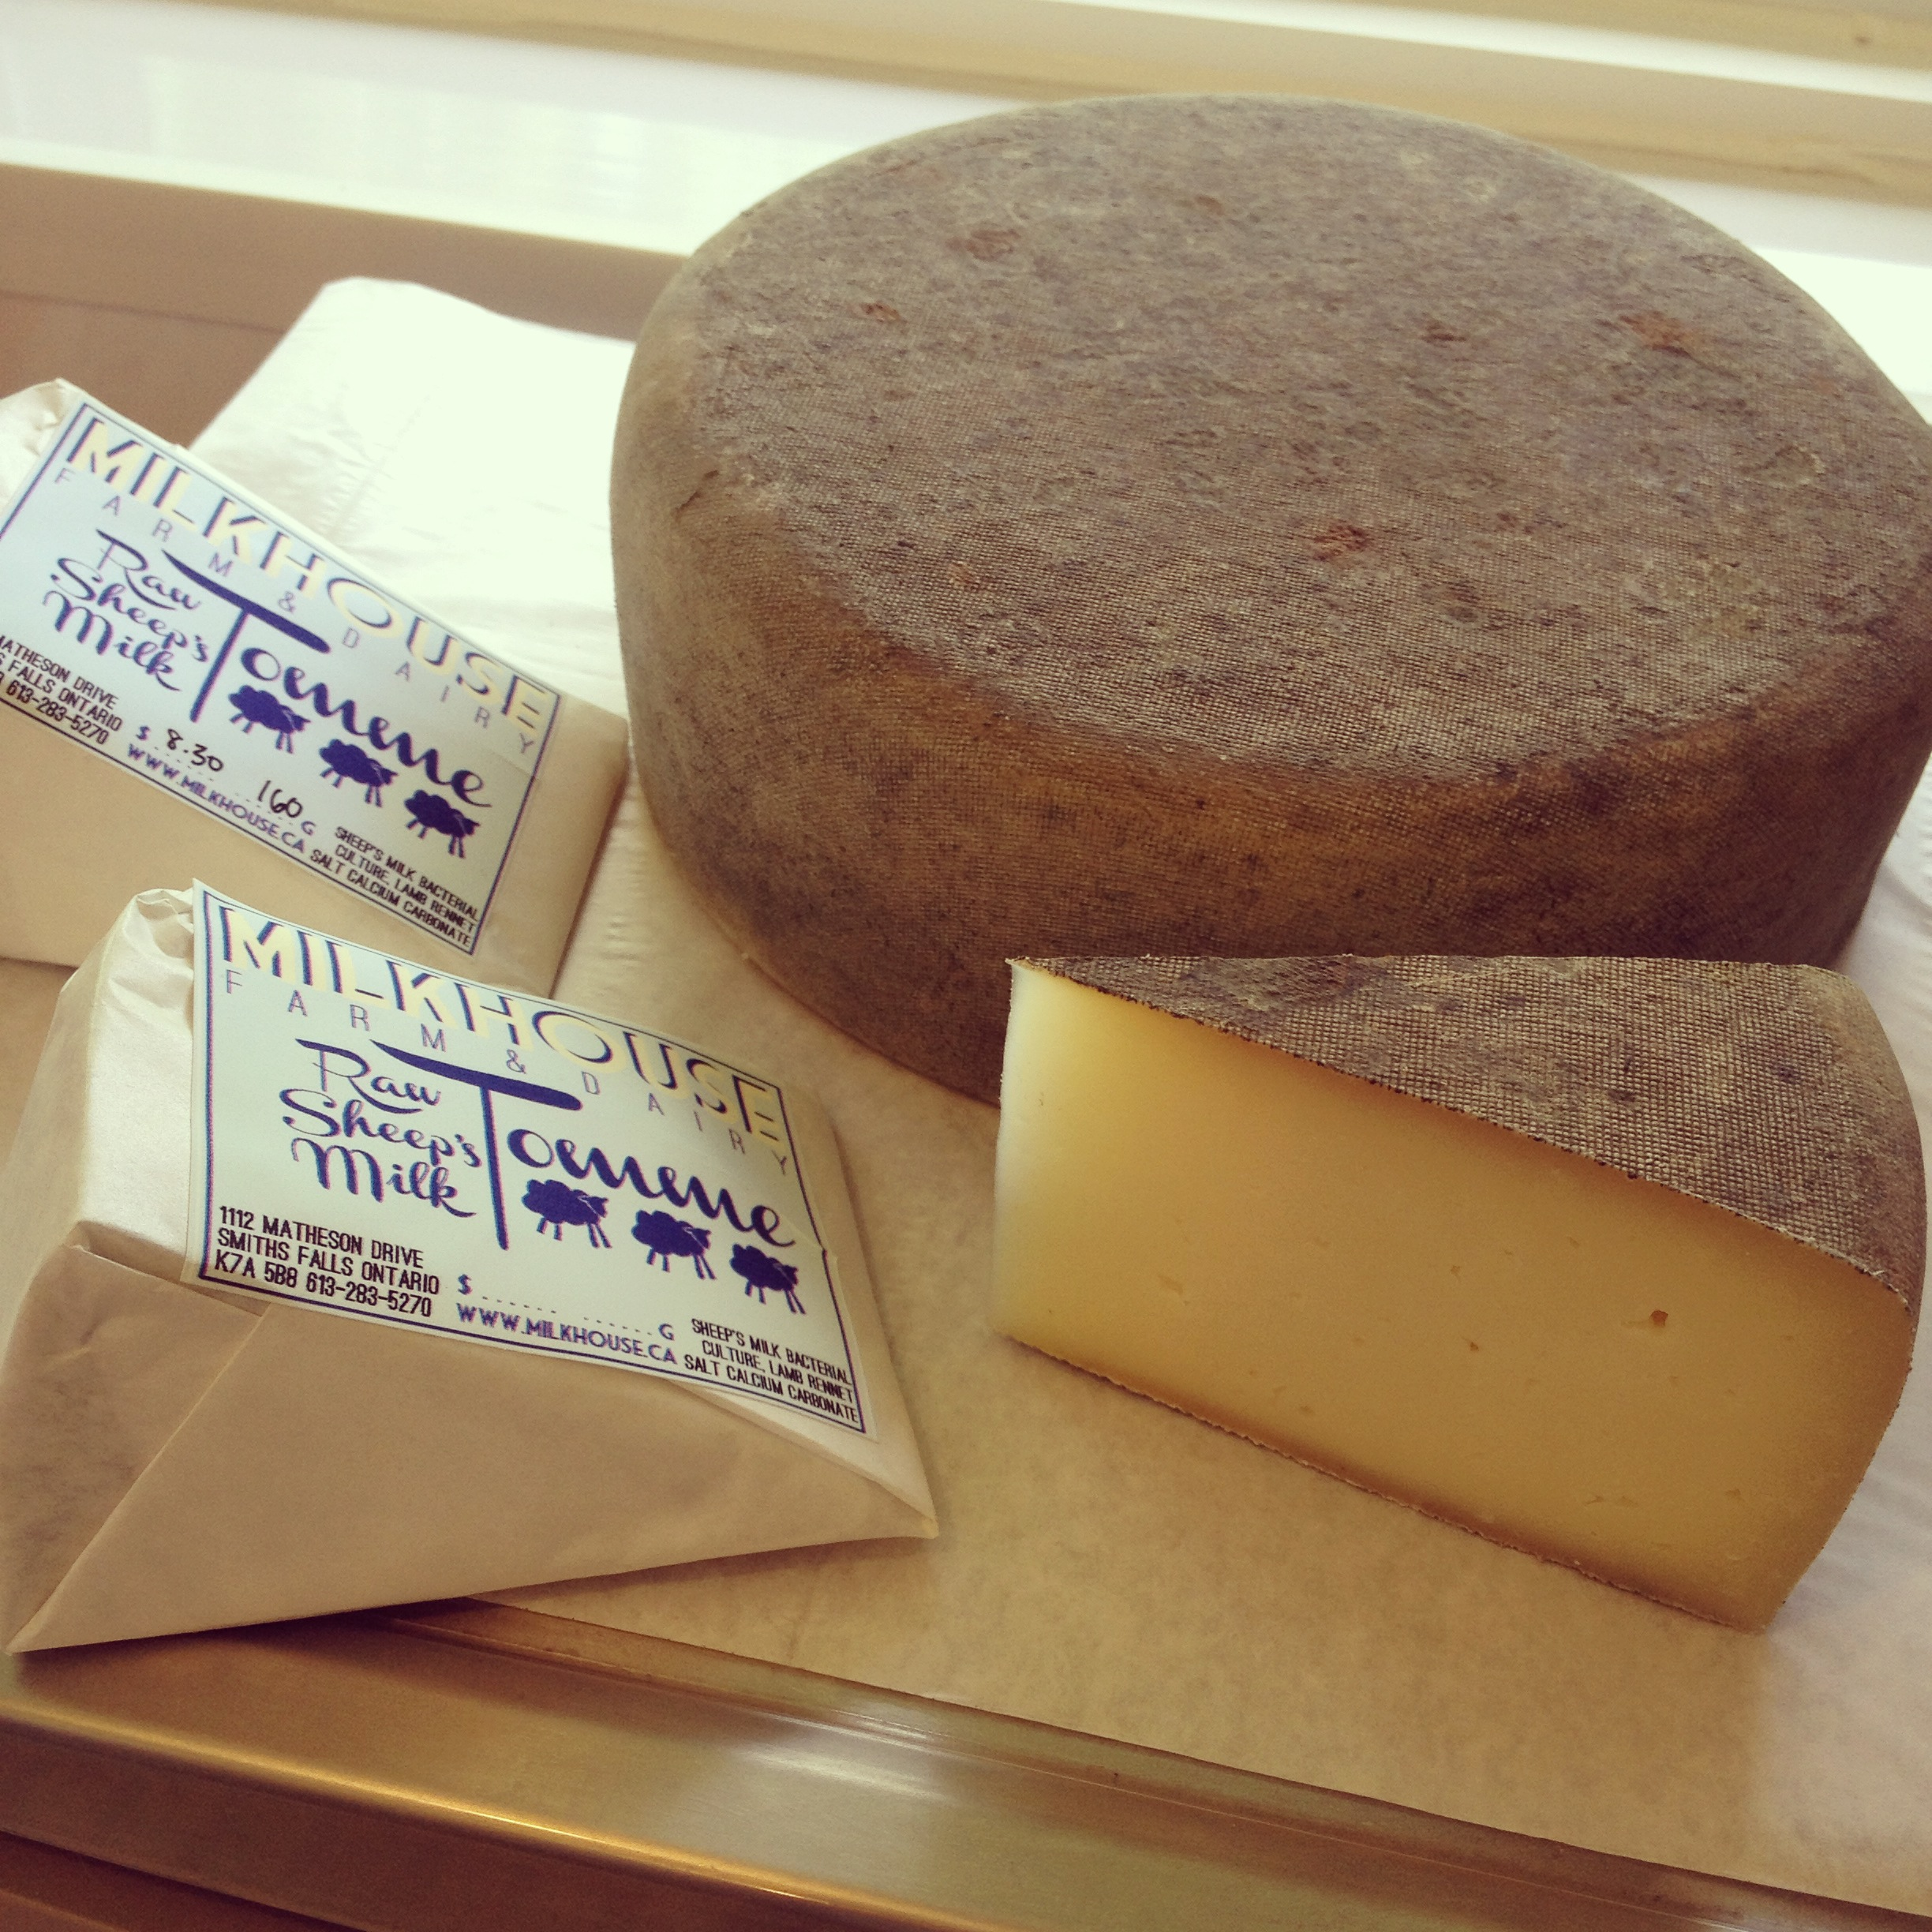 The tomme develops a nice natural rind during the aging process.